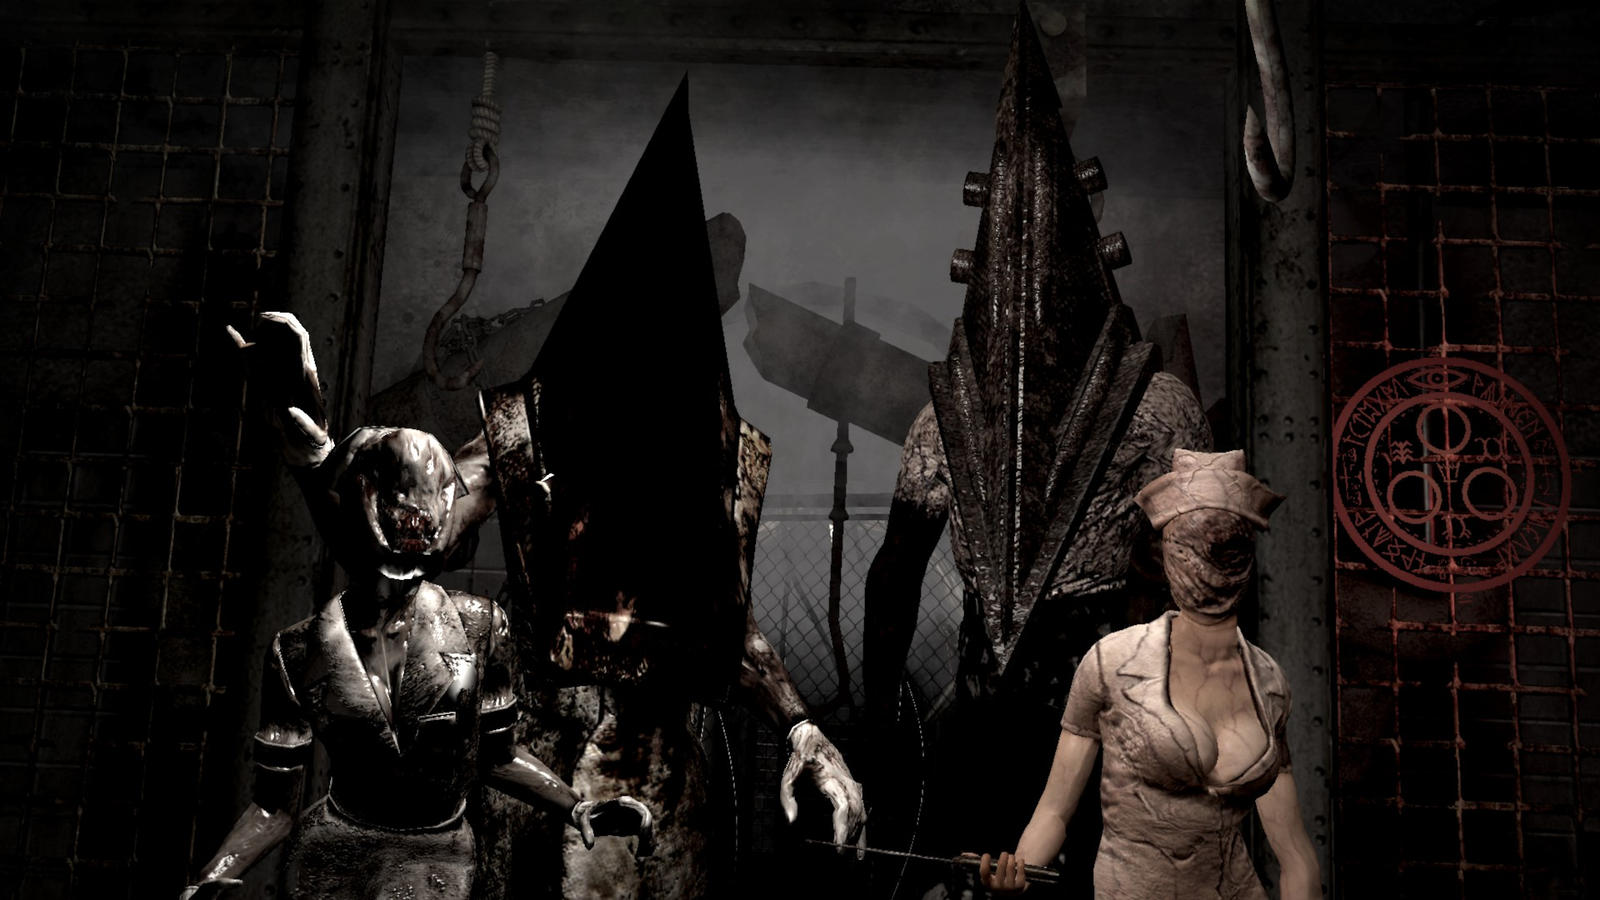 Silent Hill 2 And 5 Pyramid Head And Nurse By Scoxythepiratescout On Deviantart